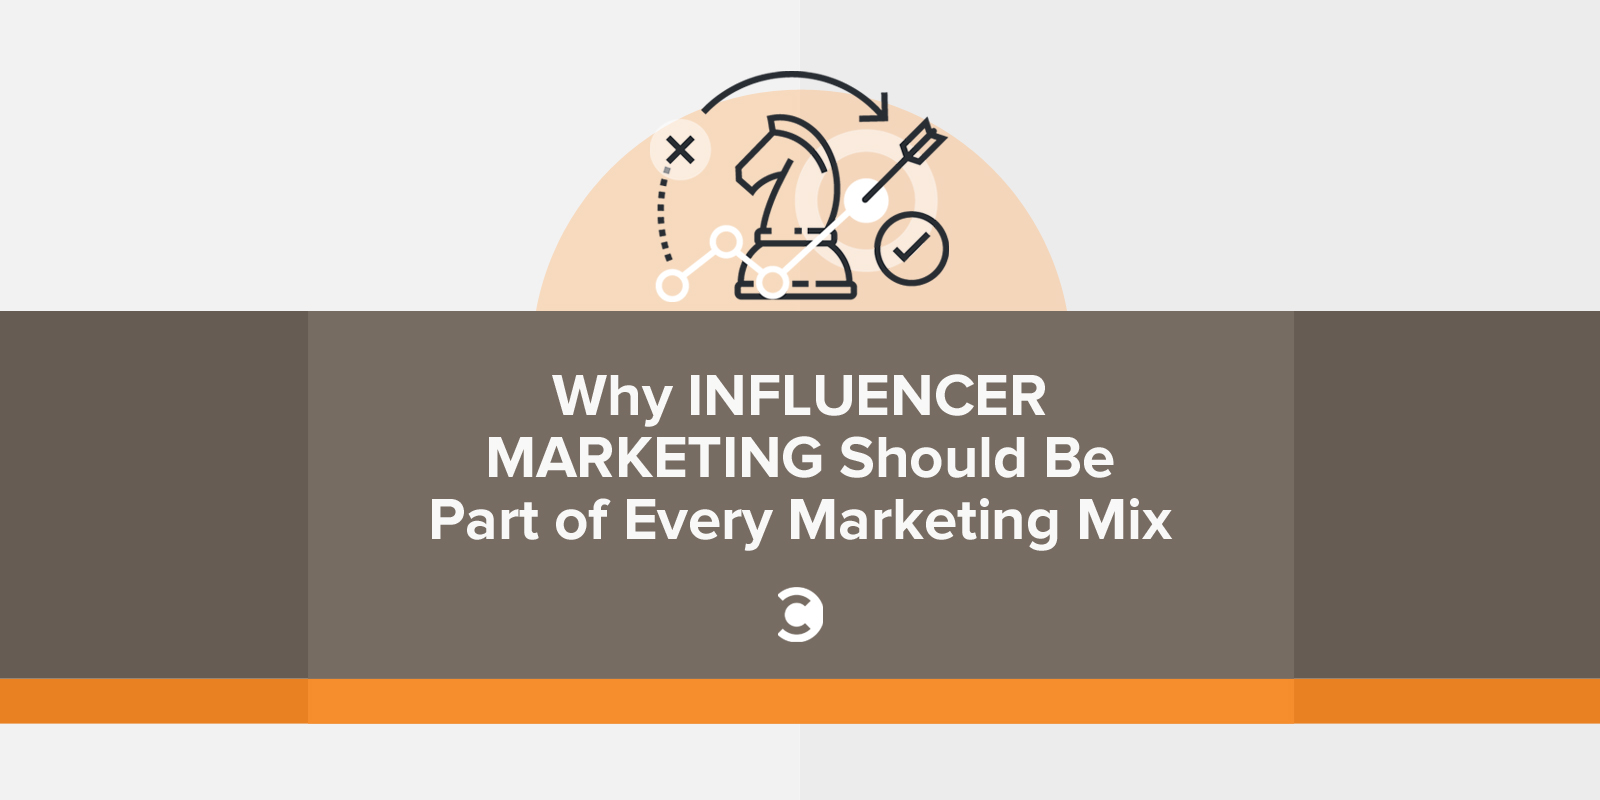 Why Influencer Marketing Should Be Part of Every Marketing Mix